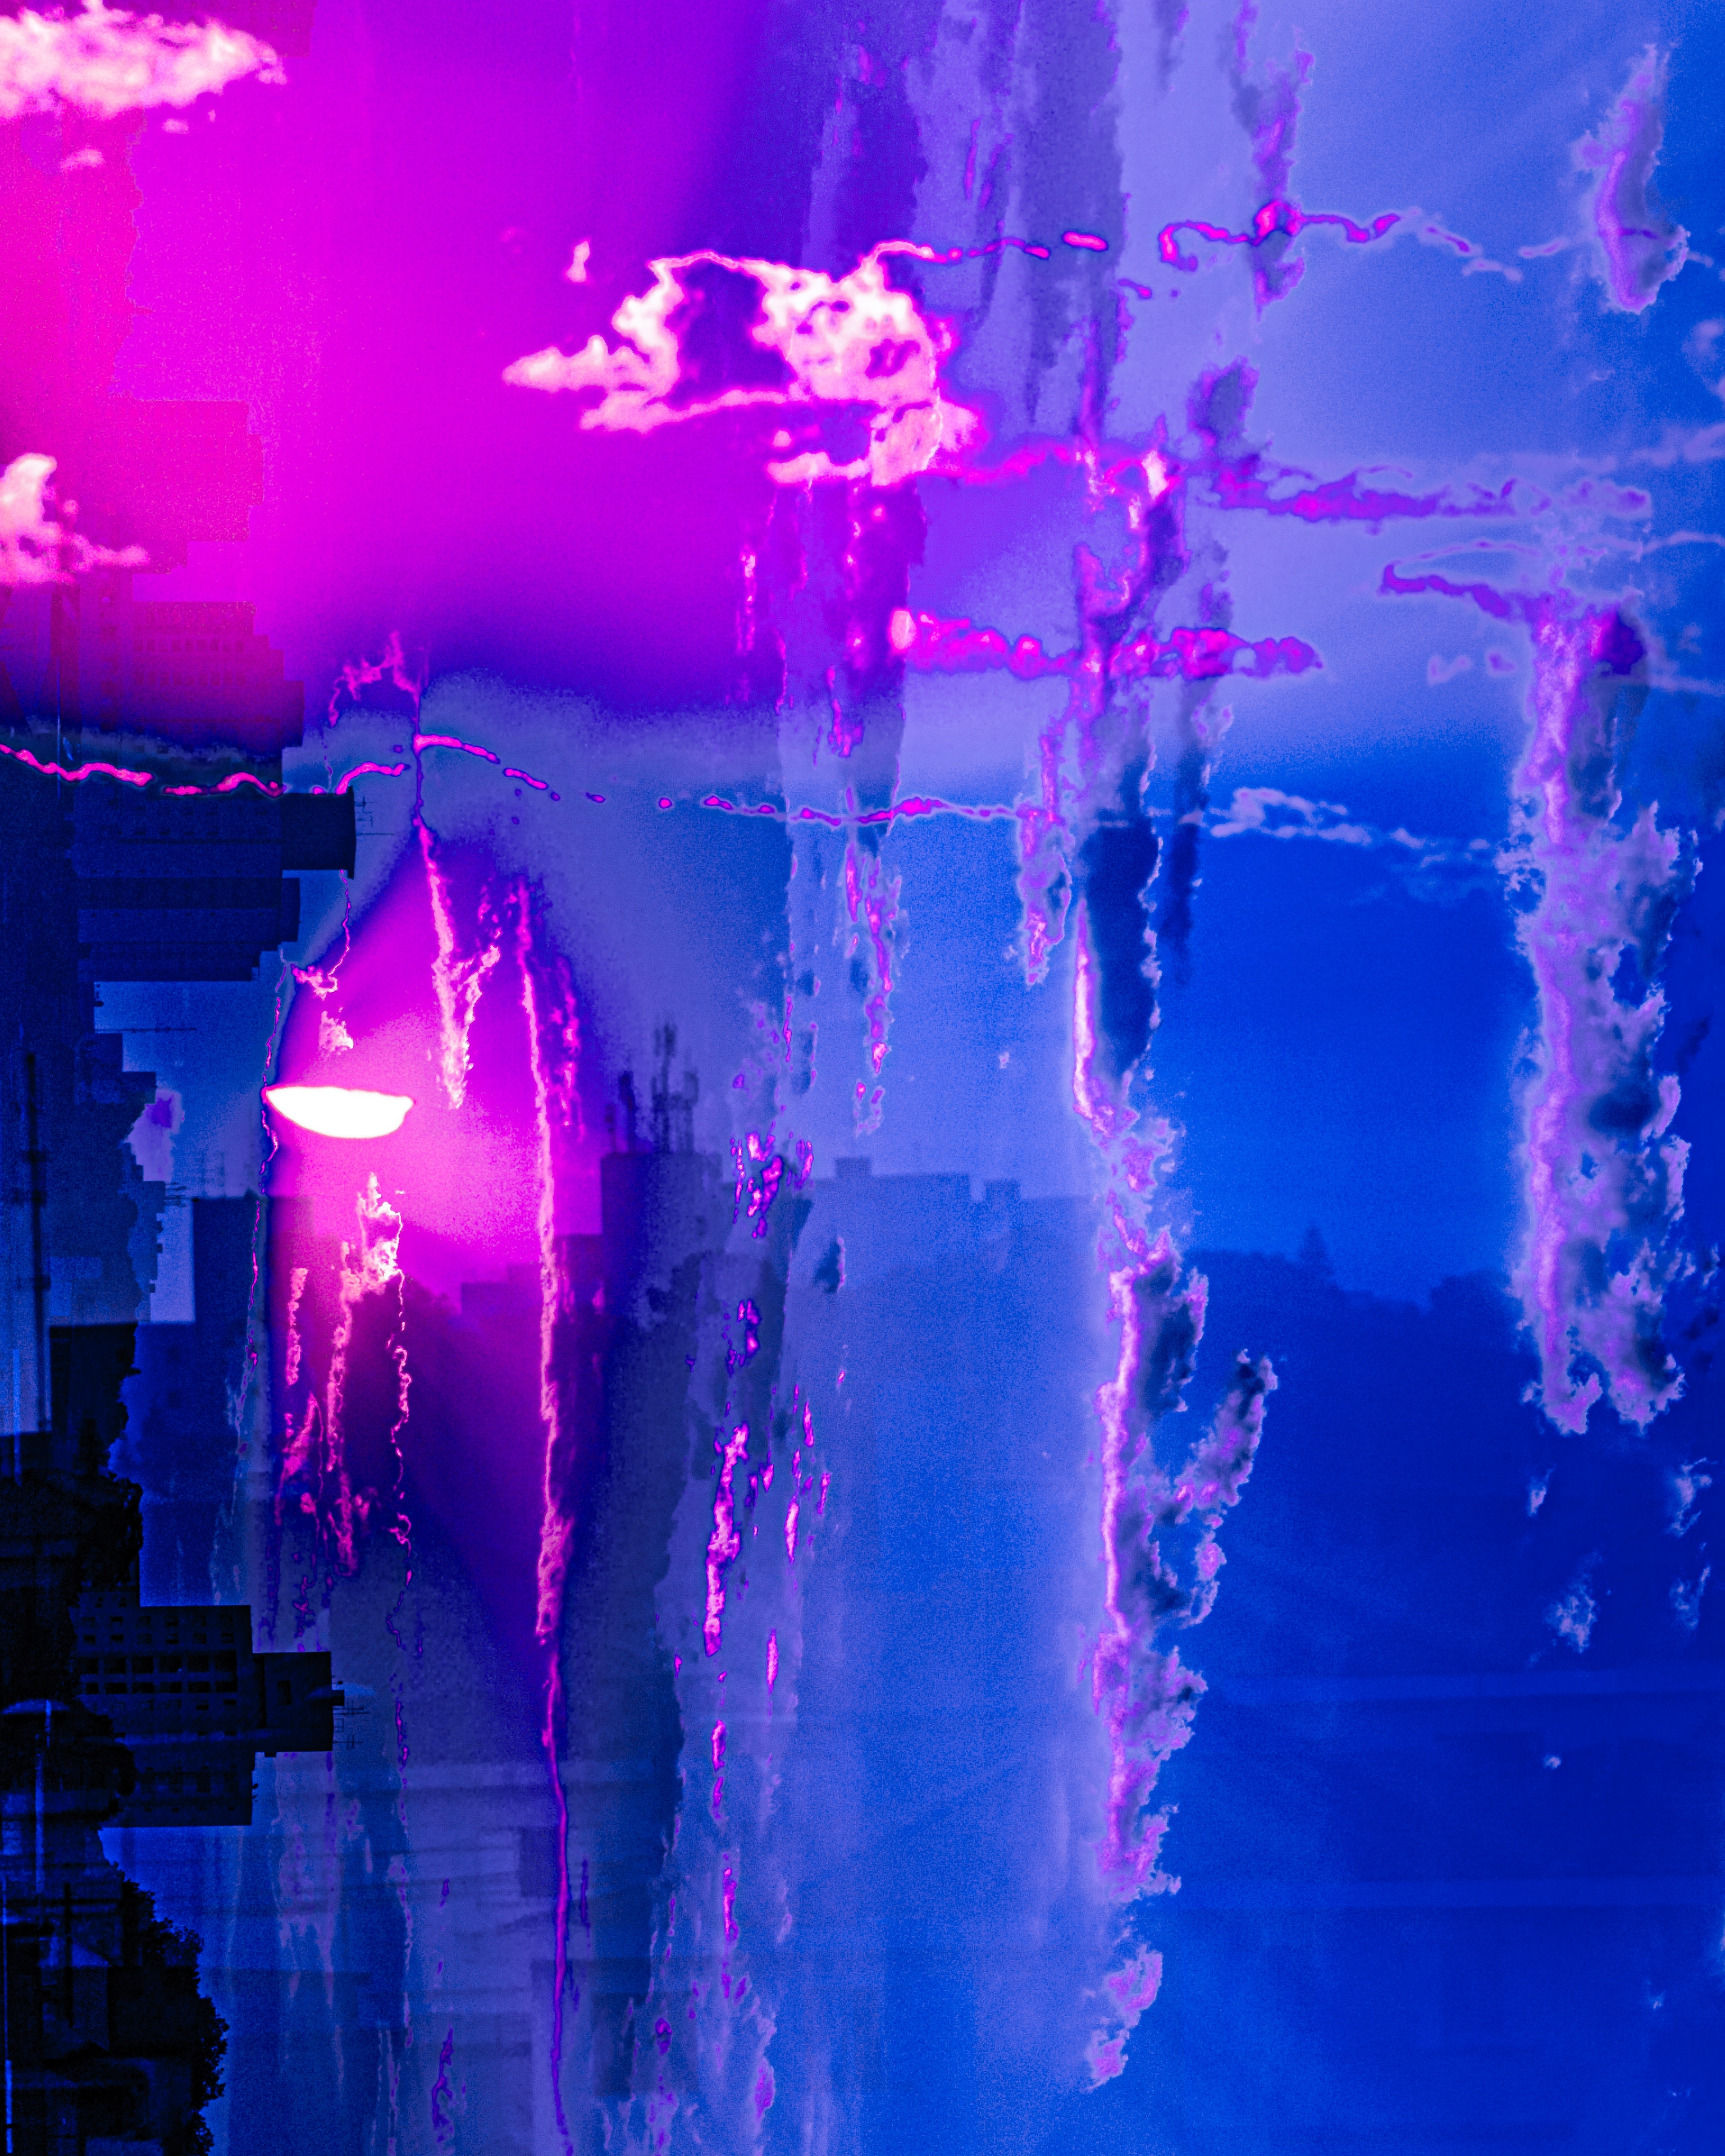 Blue And Purple Abstract Paiting Free Stock Photo